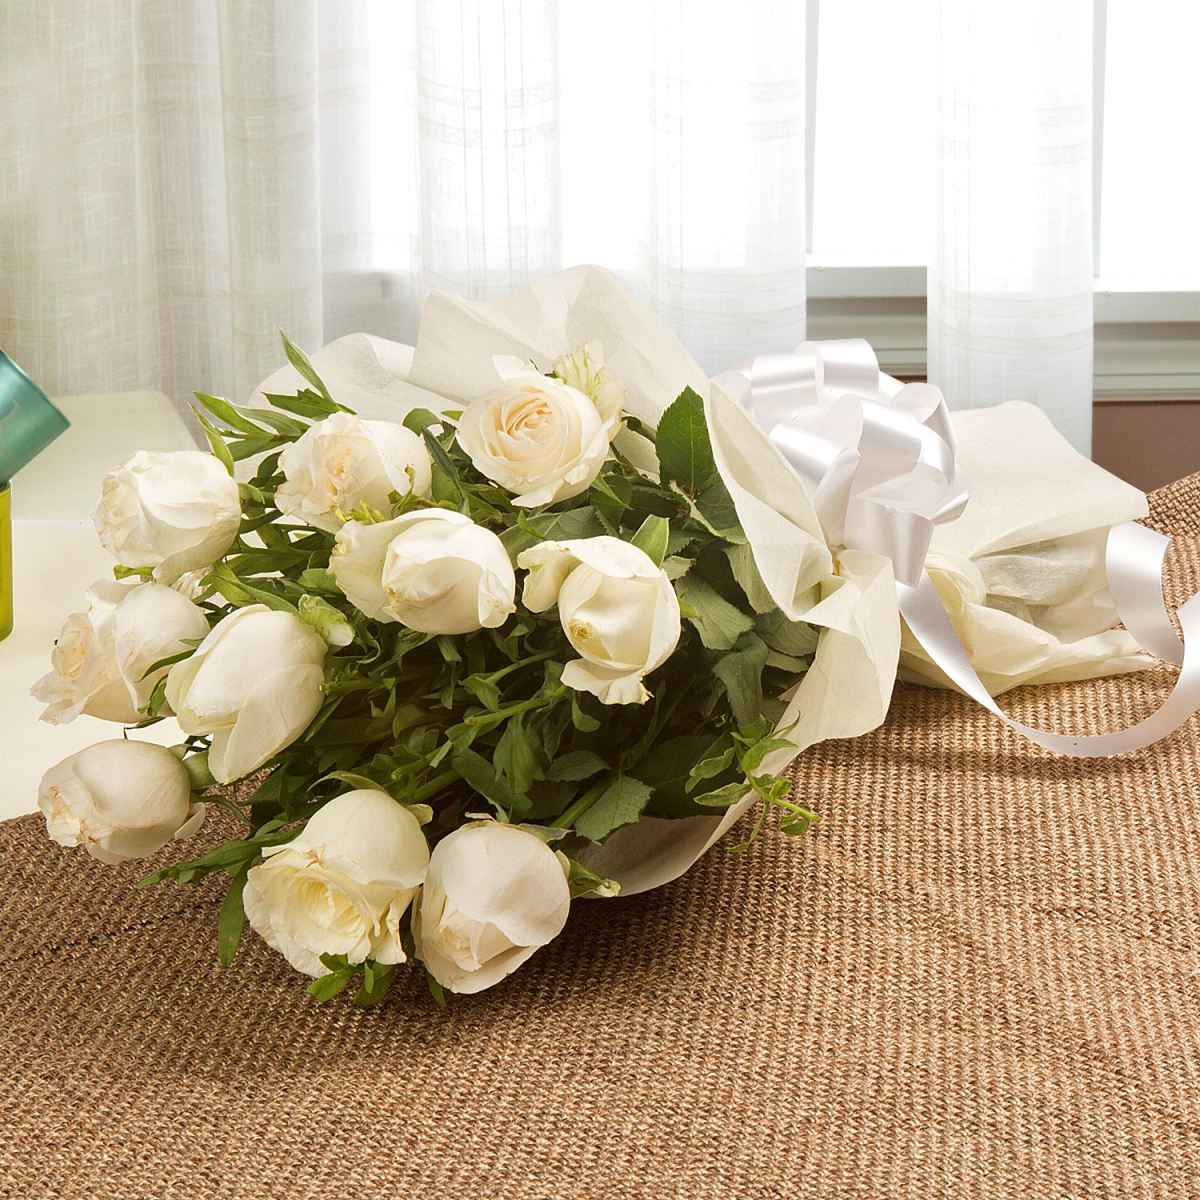 The Bouquet Of White Roses